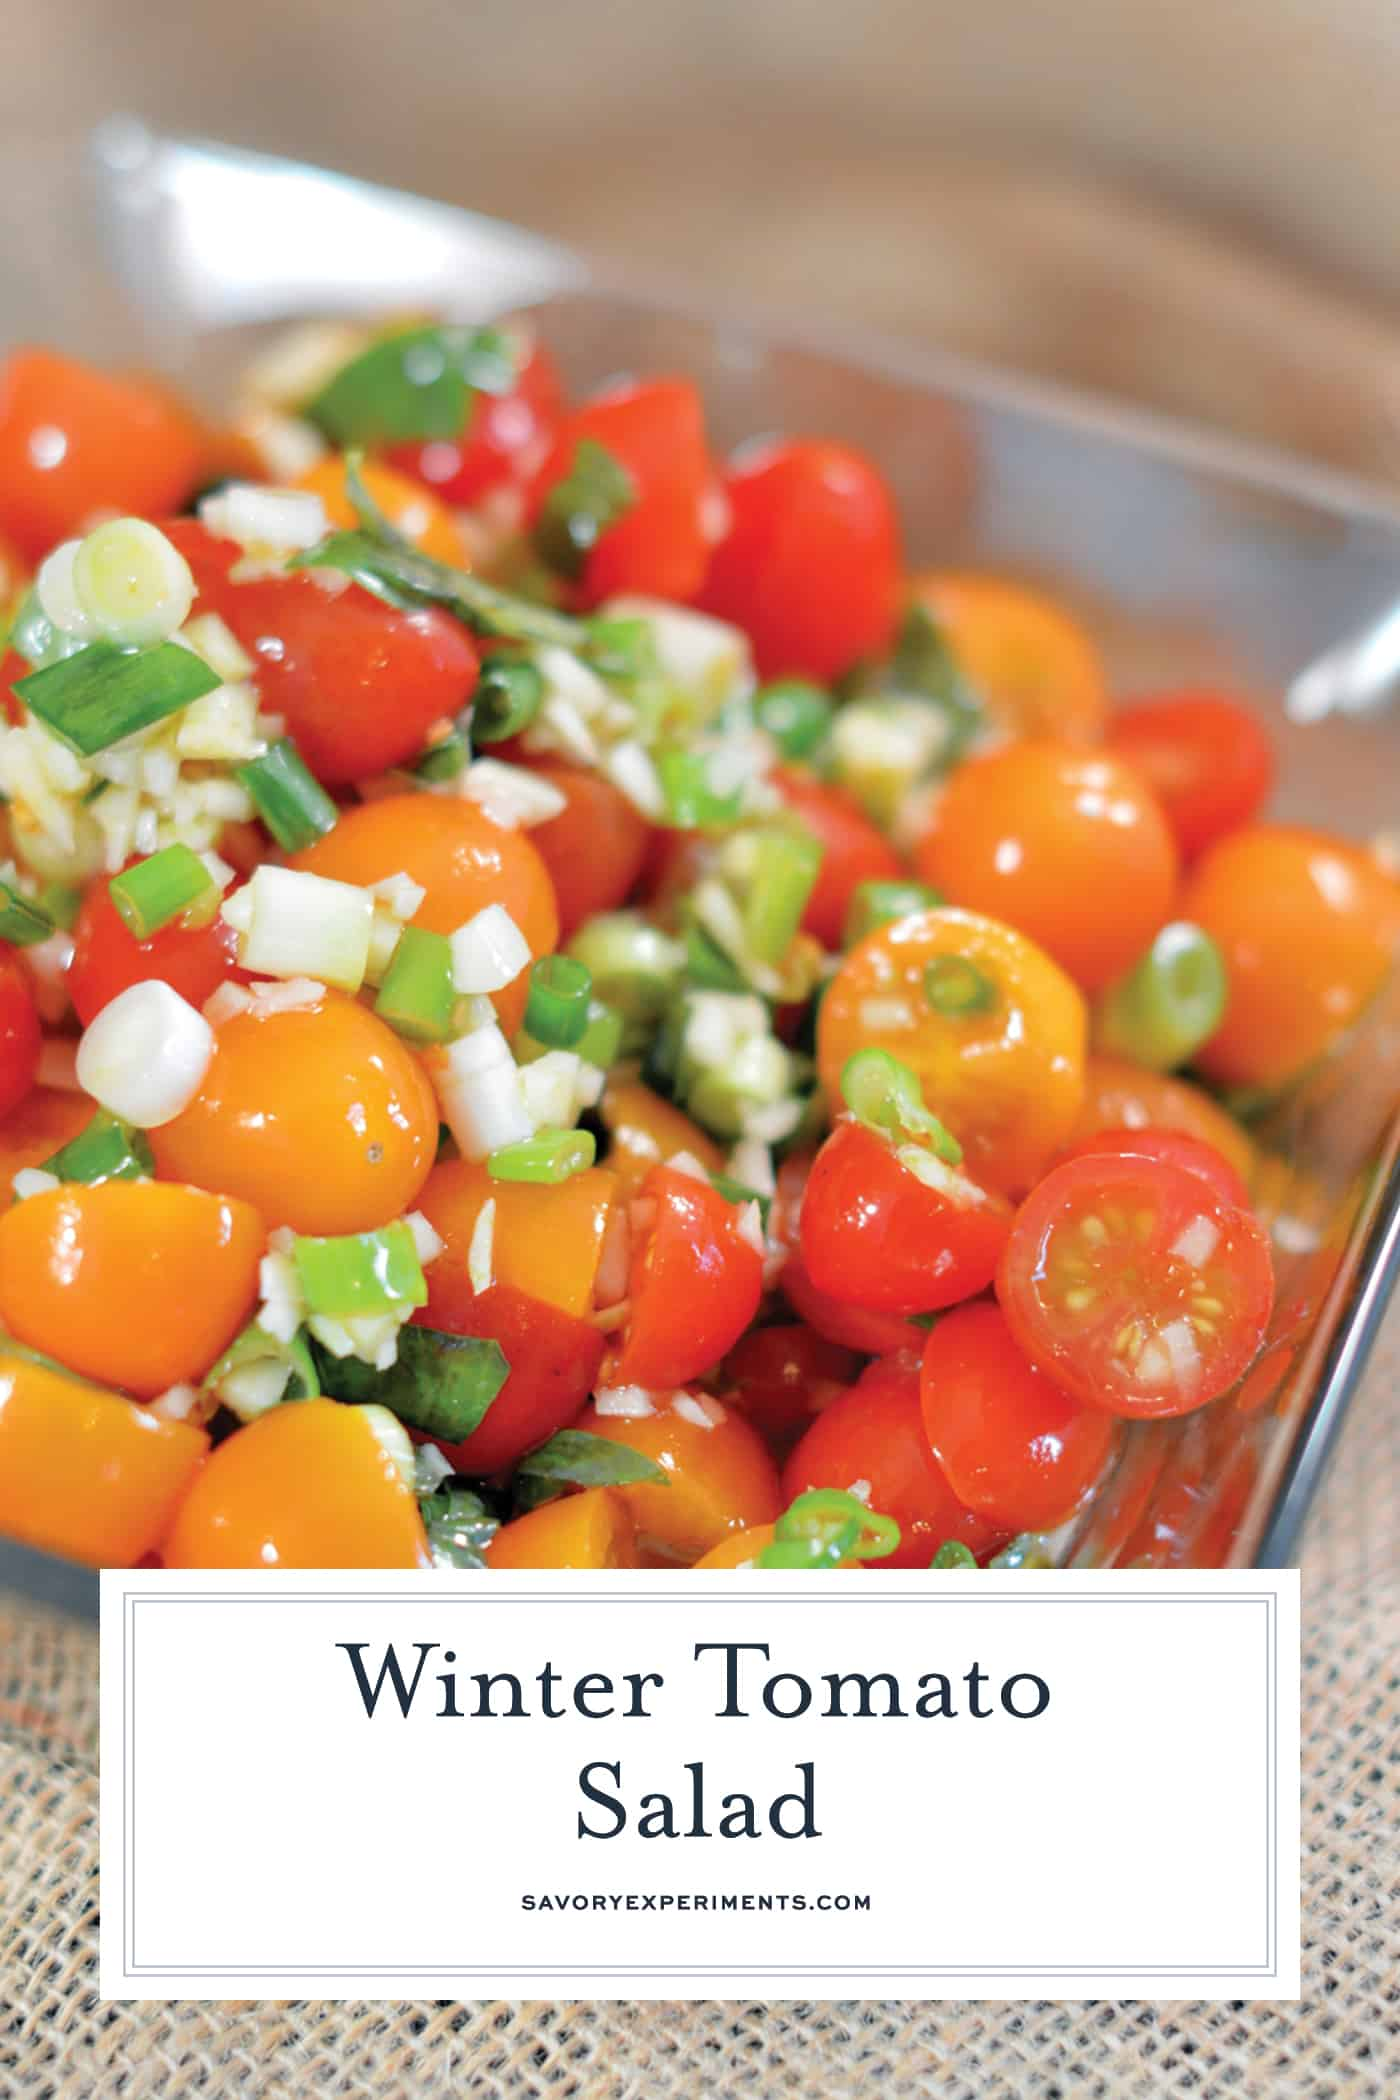 Winter Tomato Salad uses multi-colored cherry tomatoes, lots of garlic, good olive oil and basil to make a tasty side dish recipe perfect for the winter months.#tomatosalad #tomatosidedishes www.savoryexperiments.com